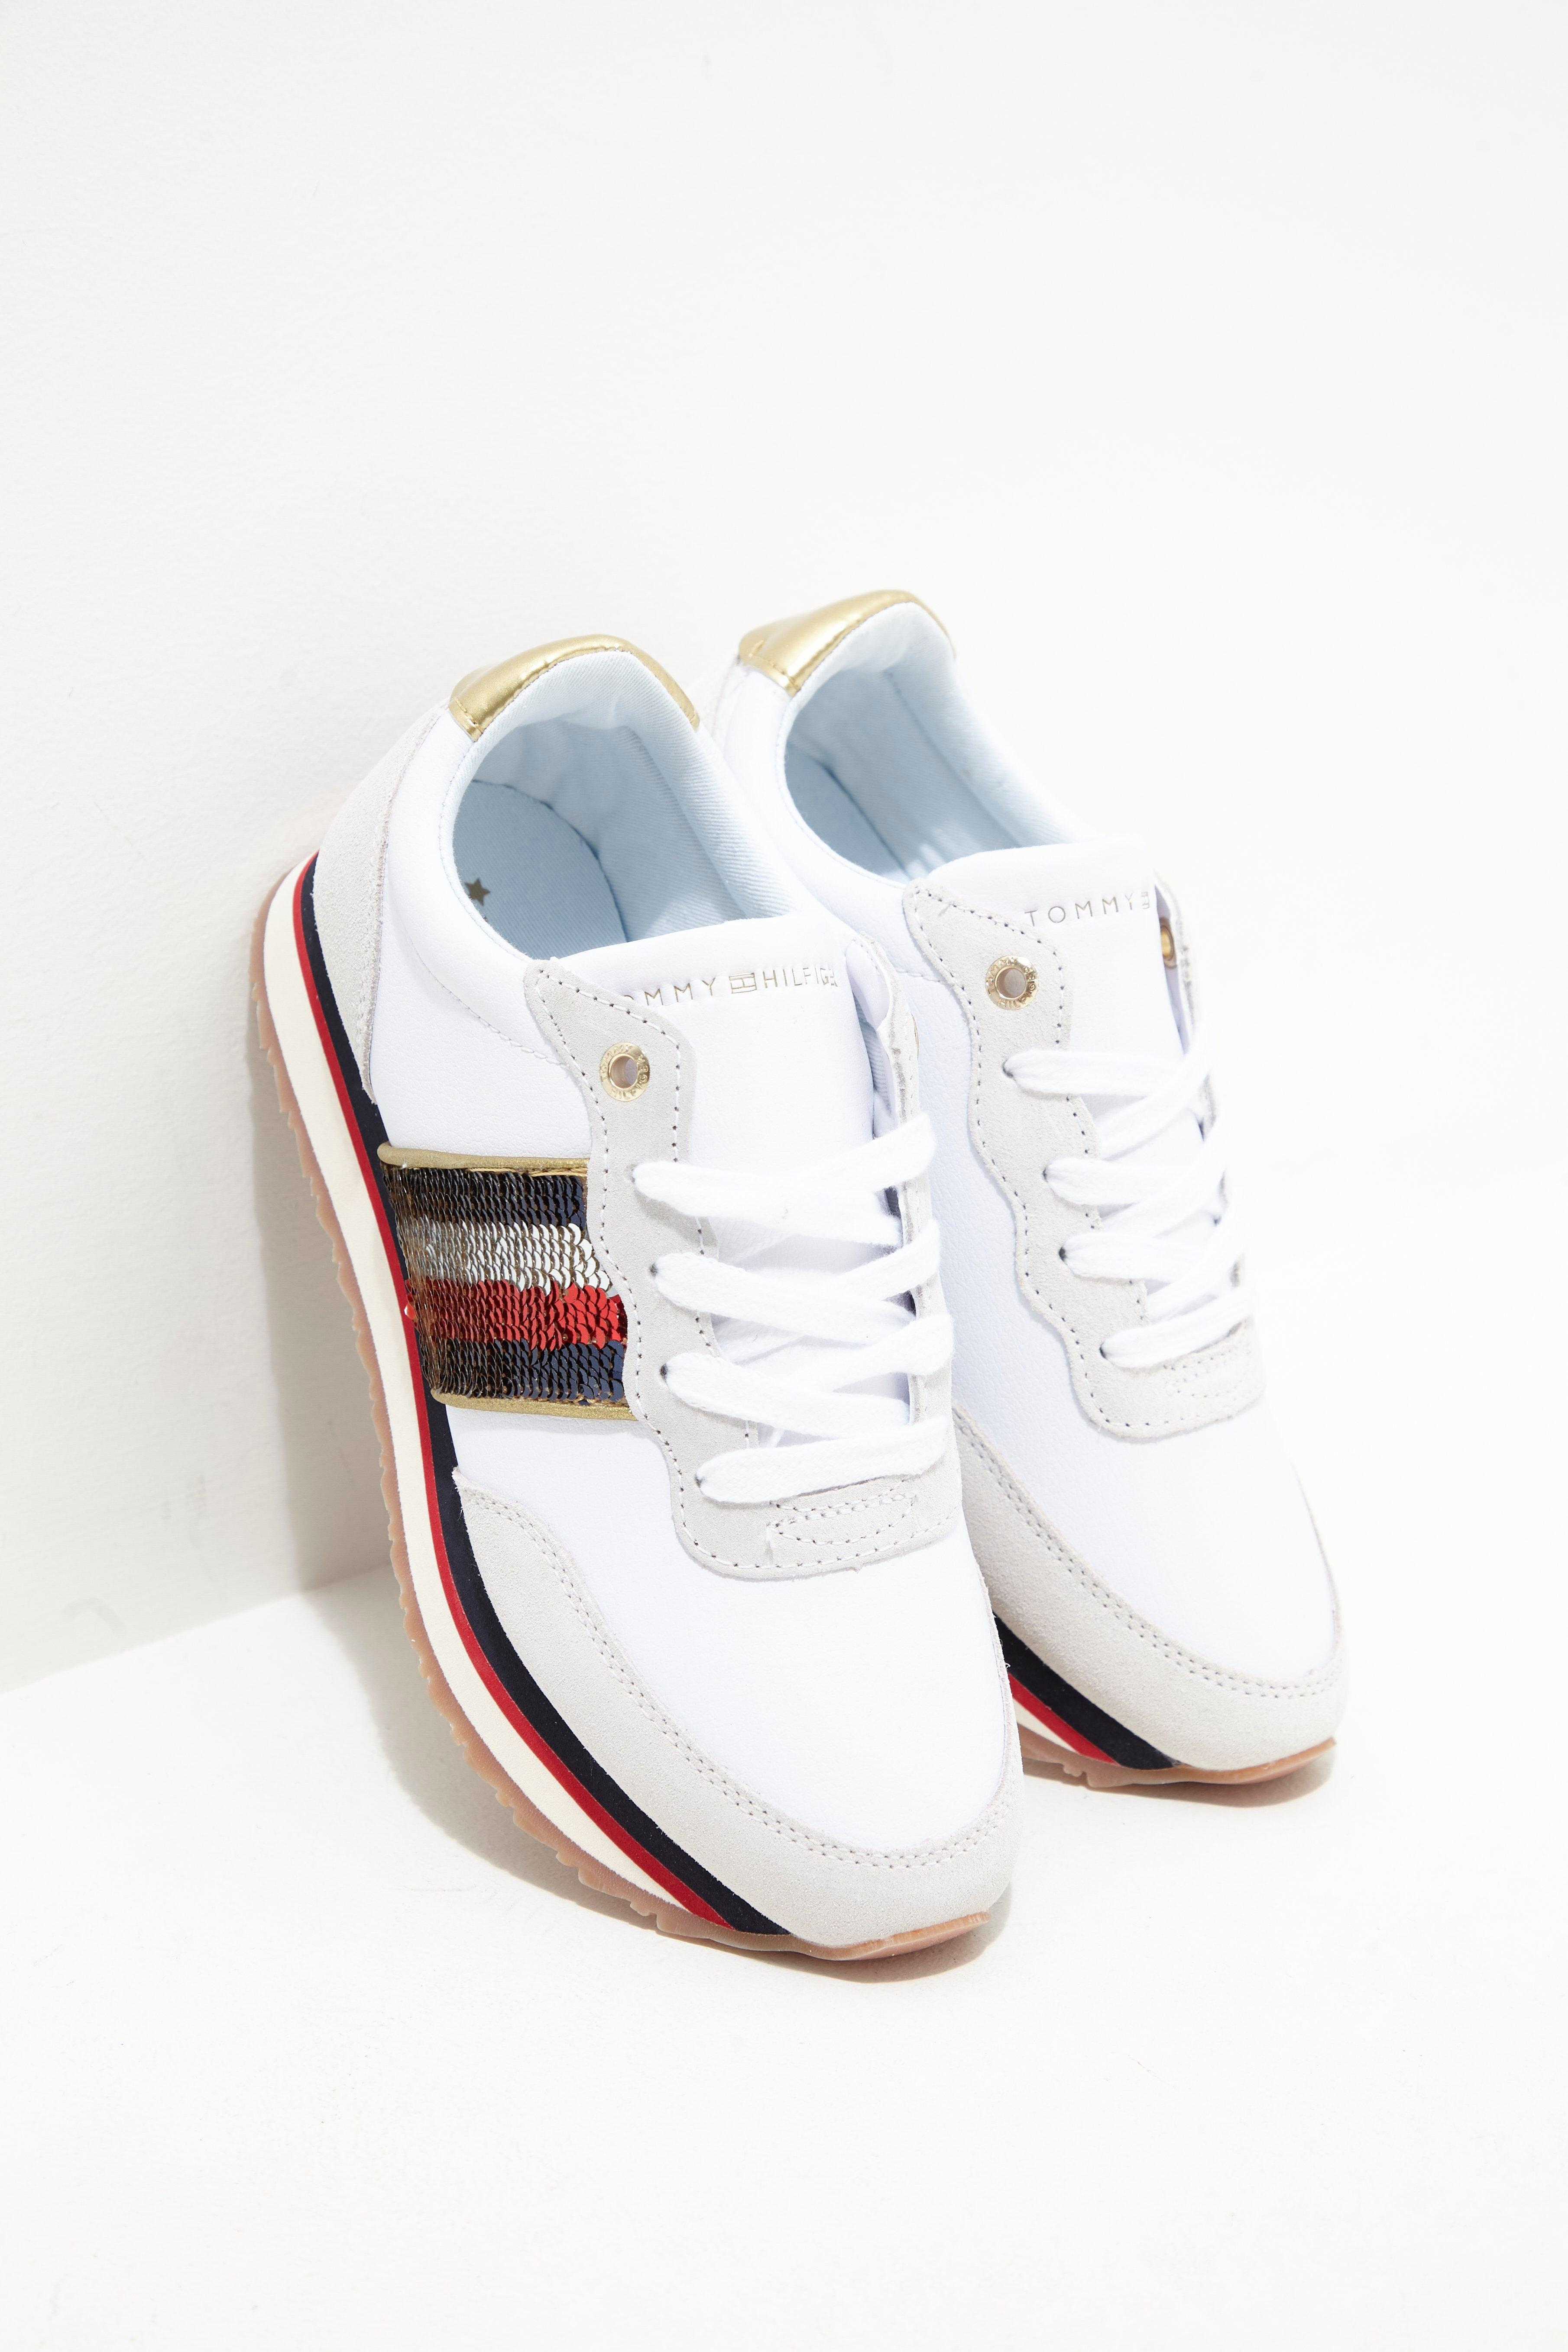 64c322676 Tommy Hilfiger Womens Sequin Retro Trainers White in White - Lyst